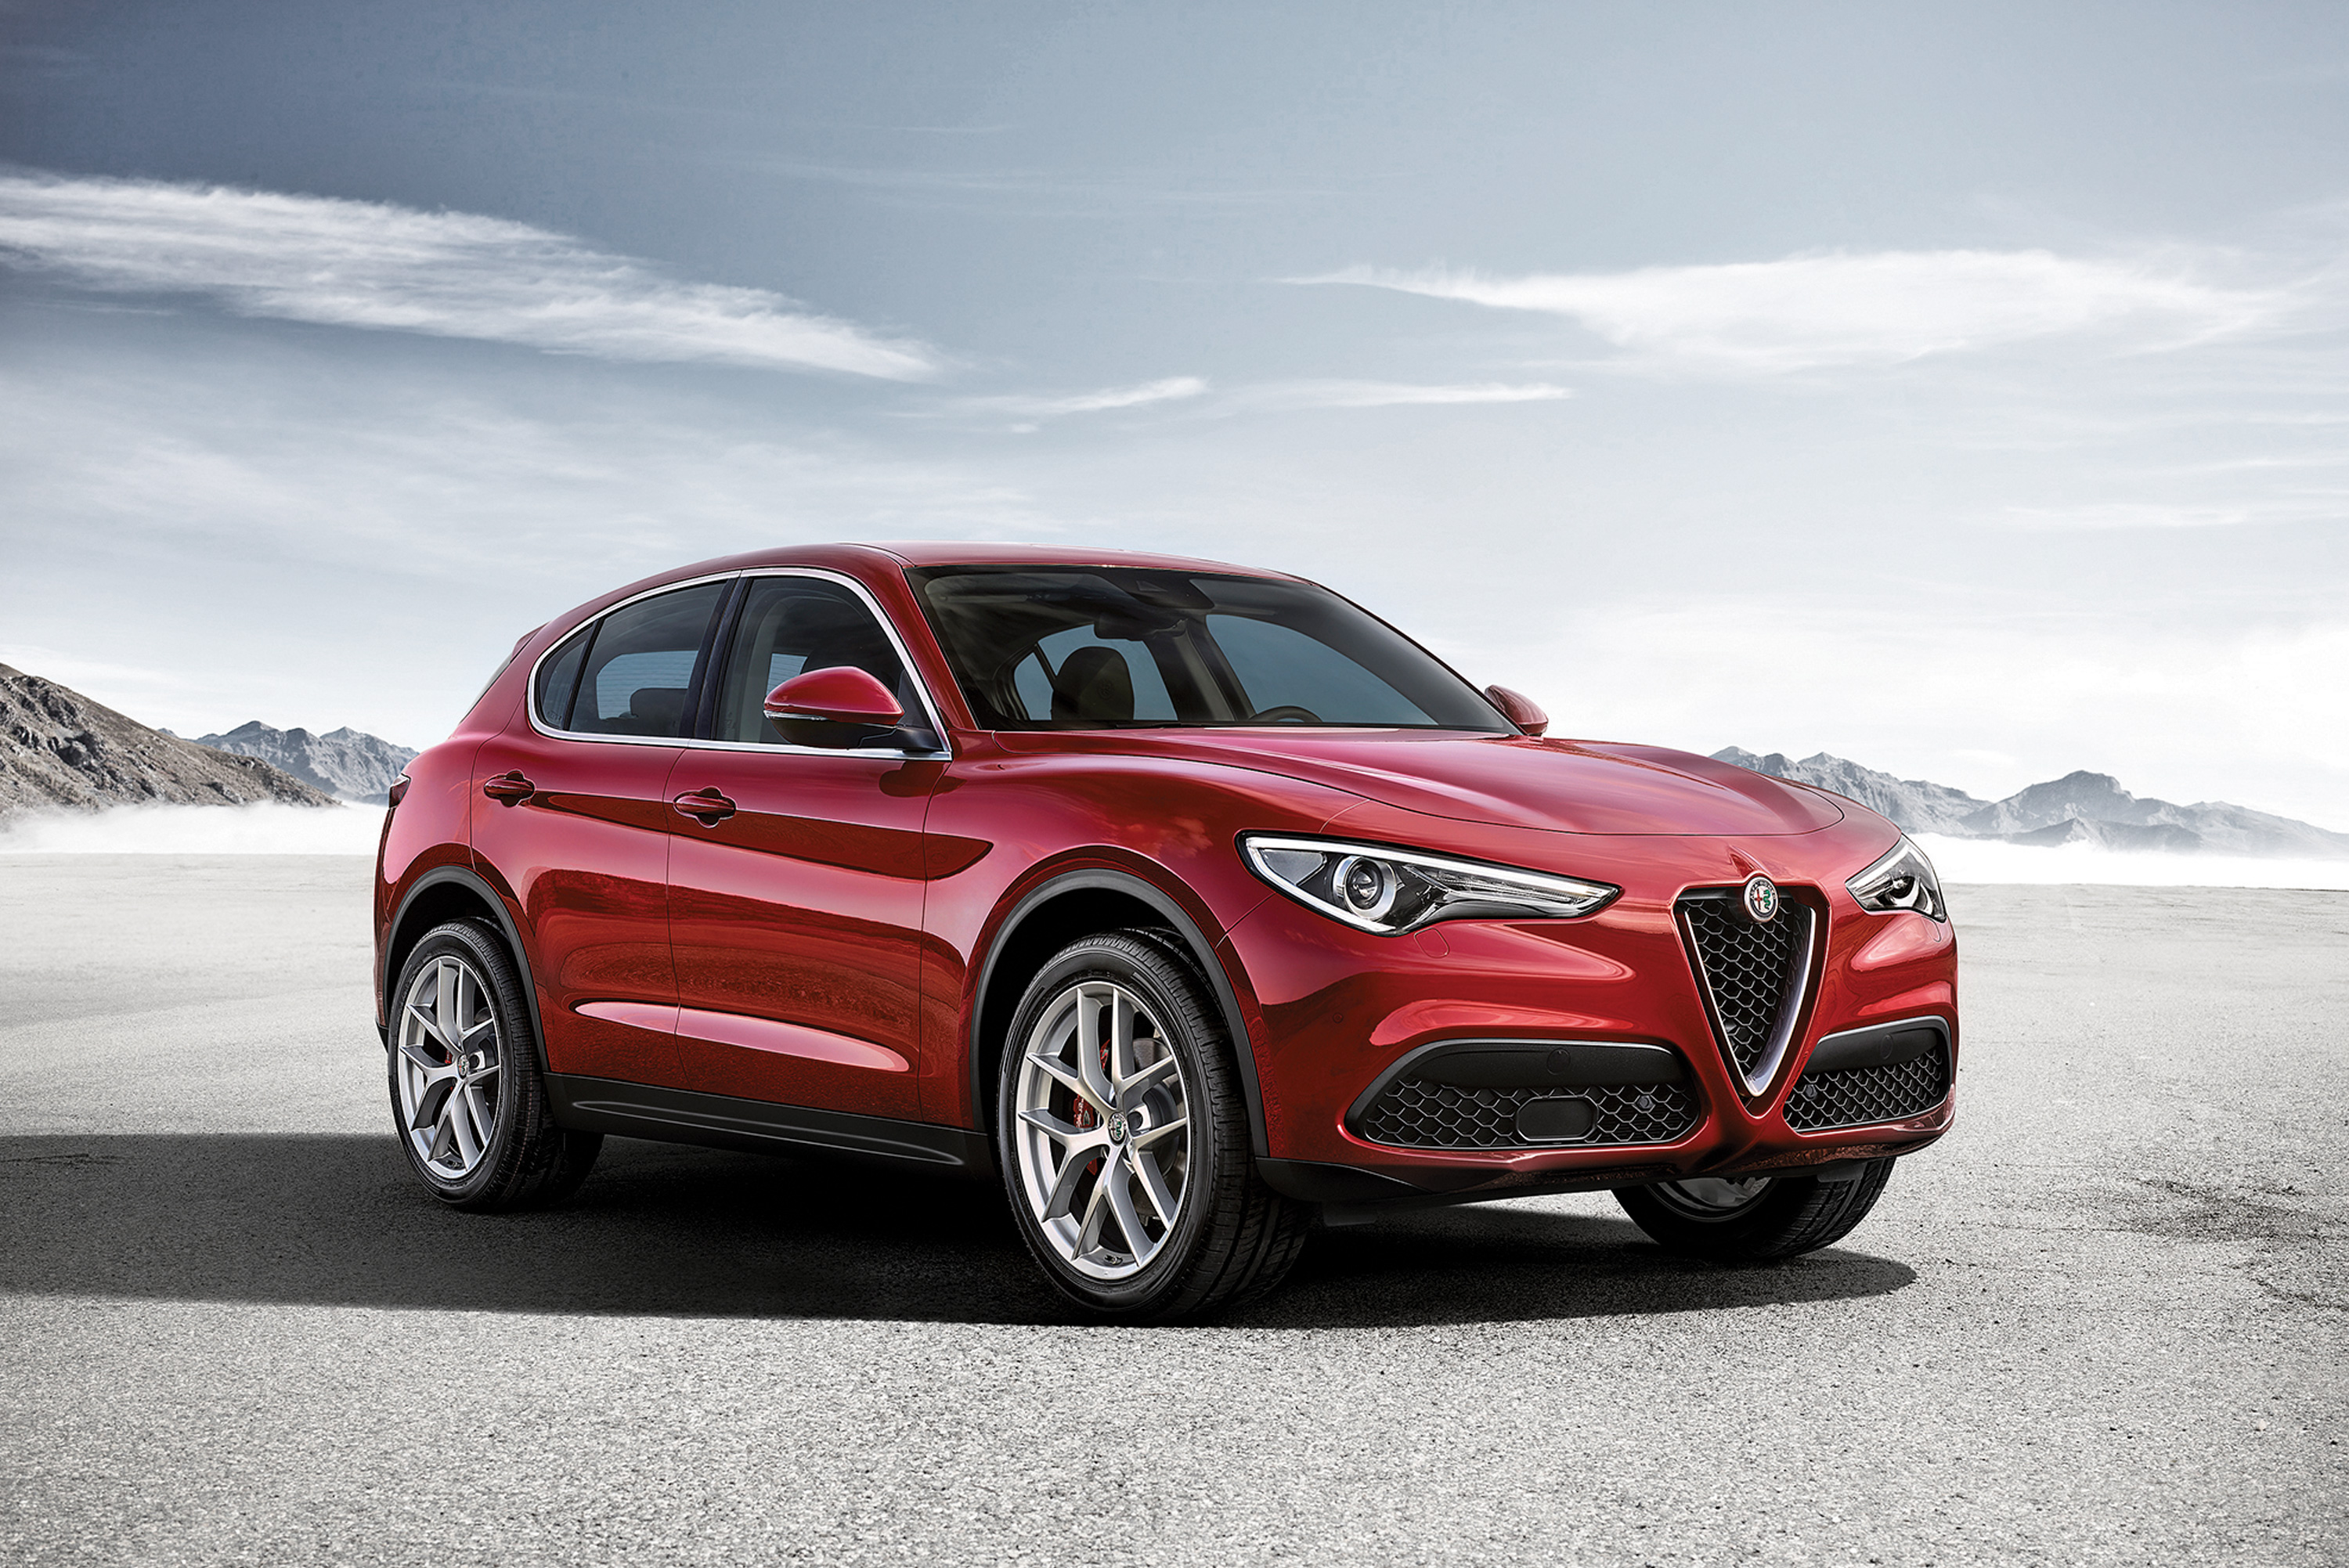 <p>BERNARD HELLBERG SR, who still fondly remembers his Alfa Romeo Giulietta Ti from varsity days, takes an in-depth look at Alfa&#8217;s latest offering.</p>